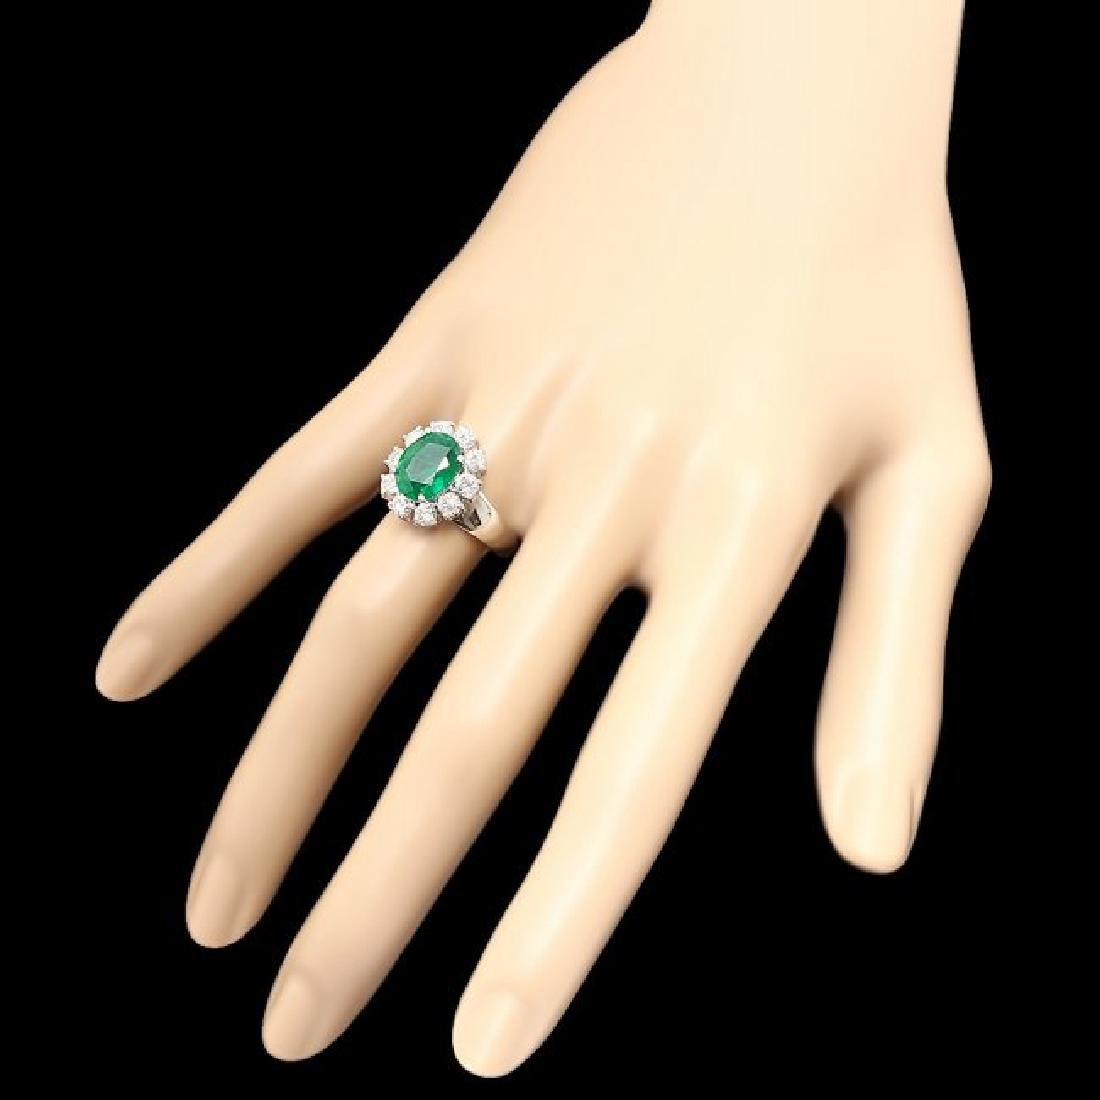 14k White Gold 3.00ct Emerald 1.10ct Diamond Ring - 3